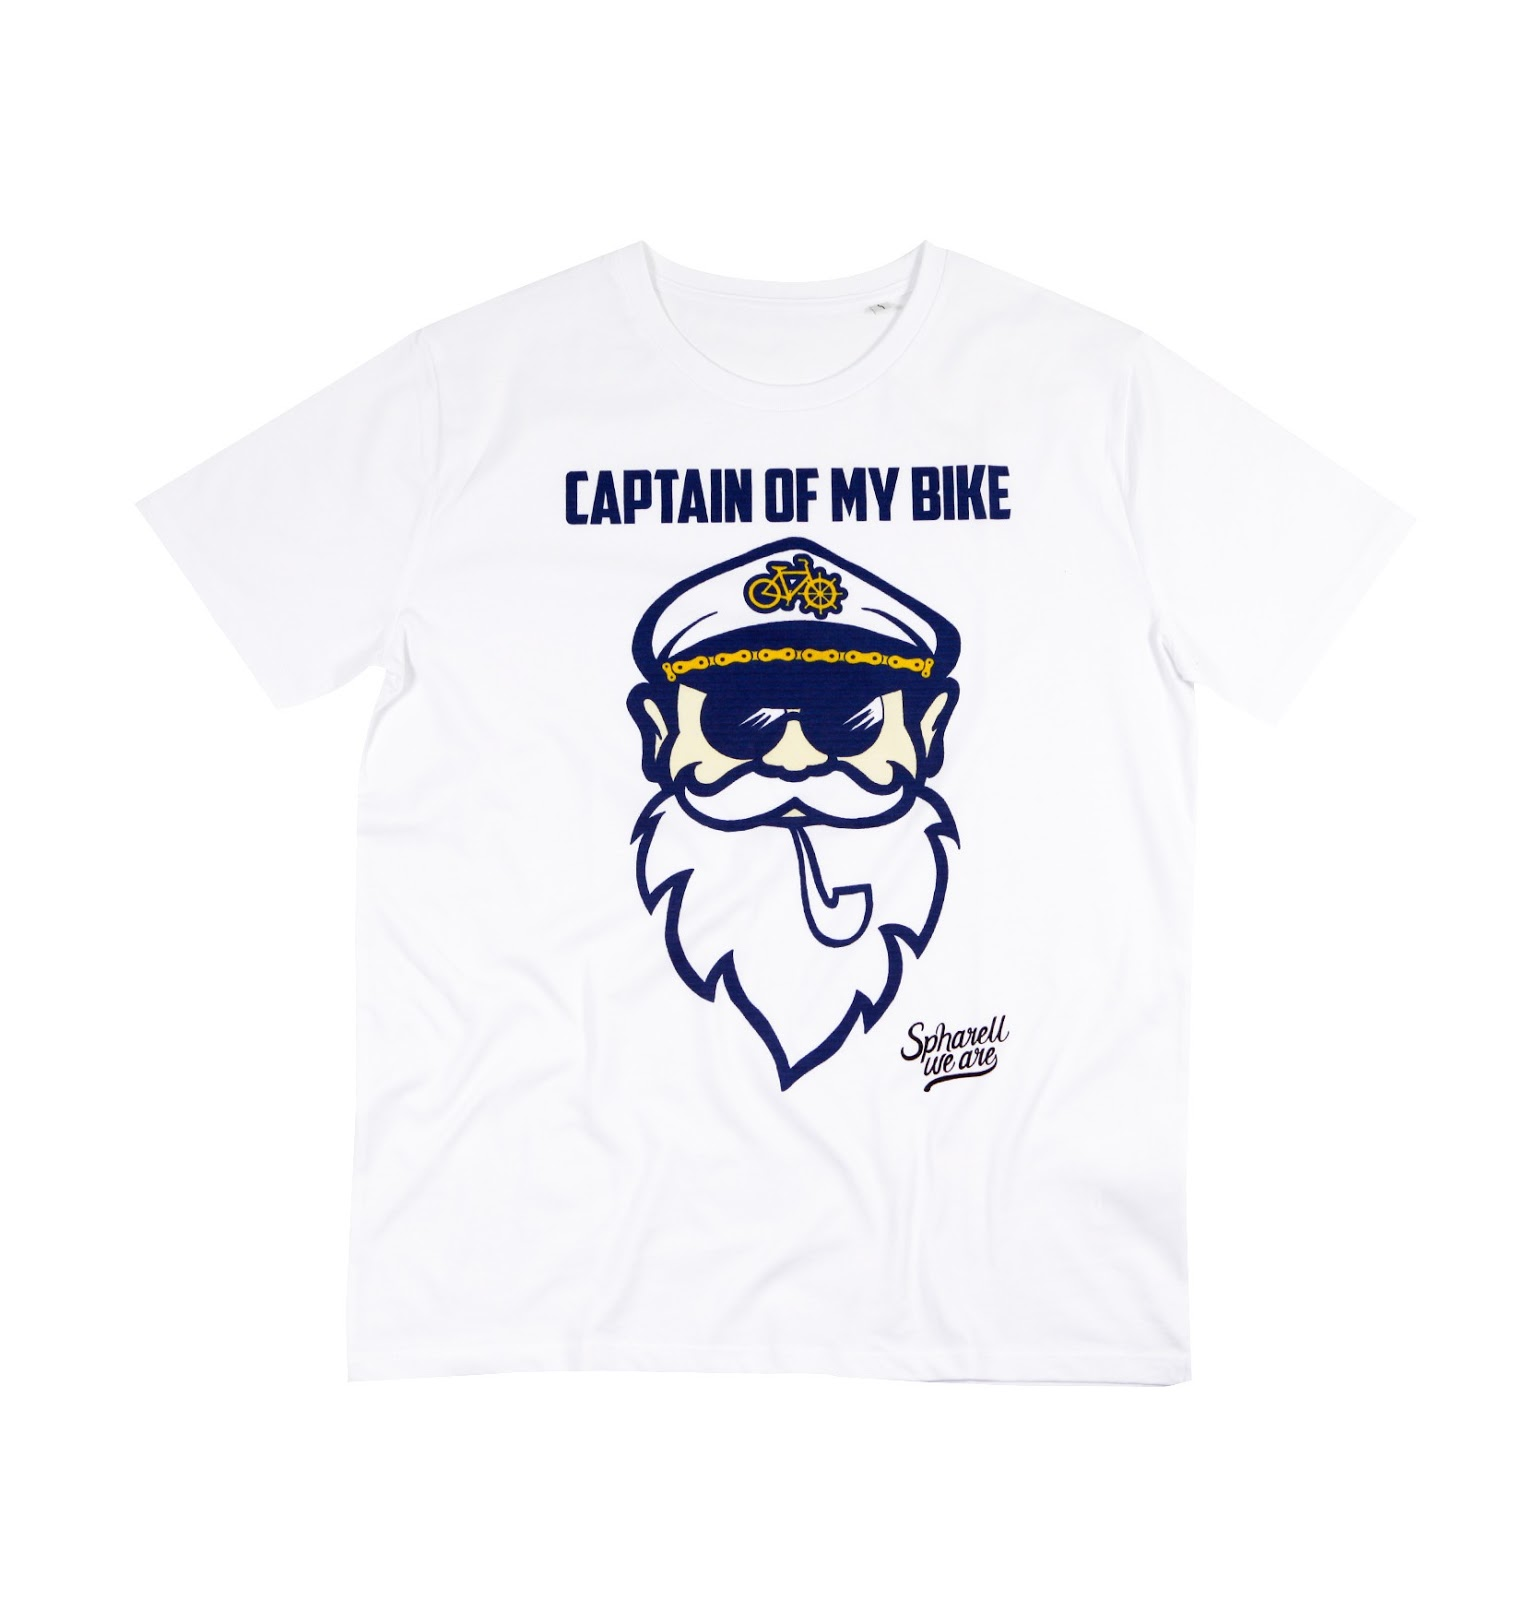 https://grafitee.es/s/camisetas/909-t-shirt-captain-of-my-bike.html